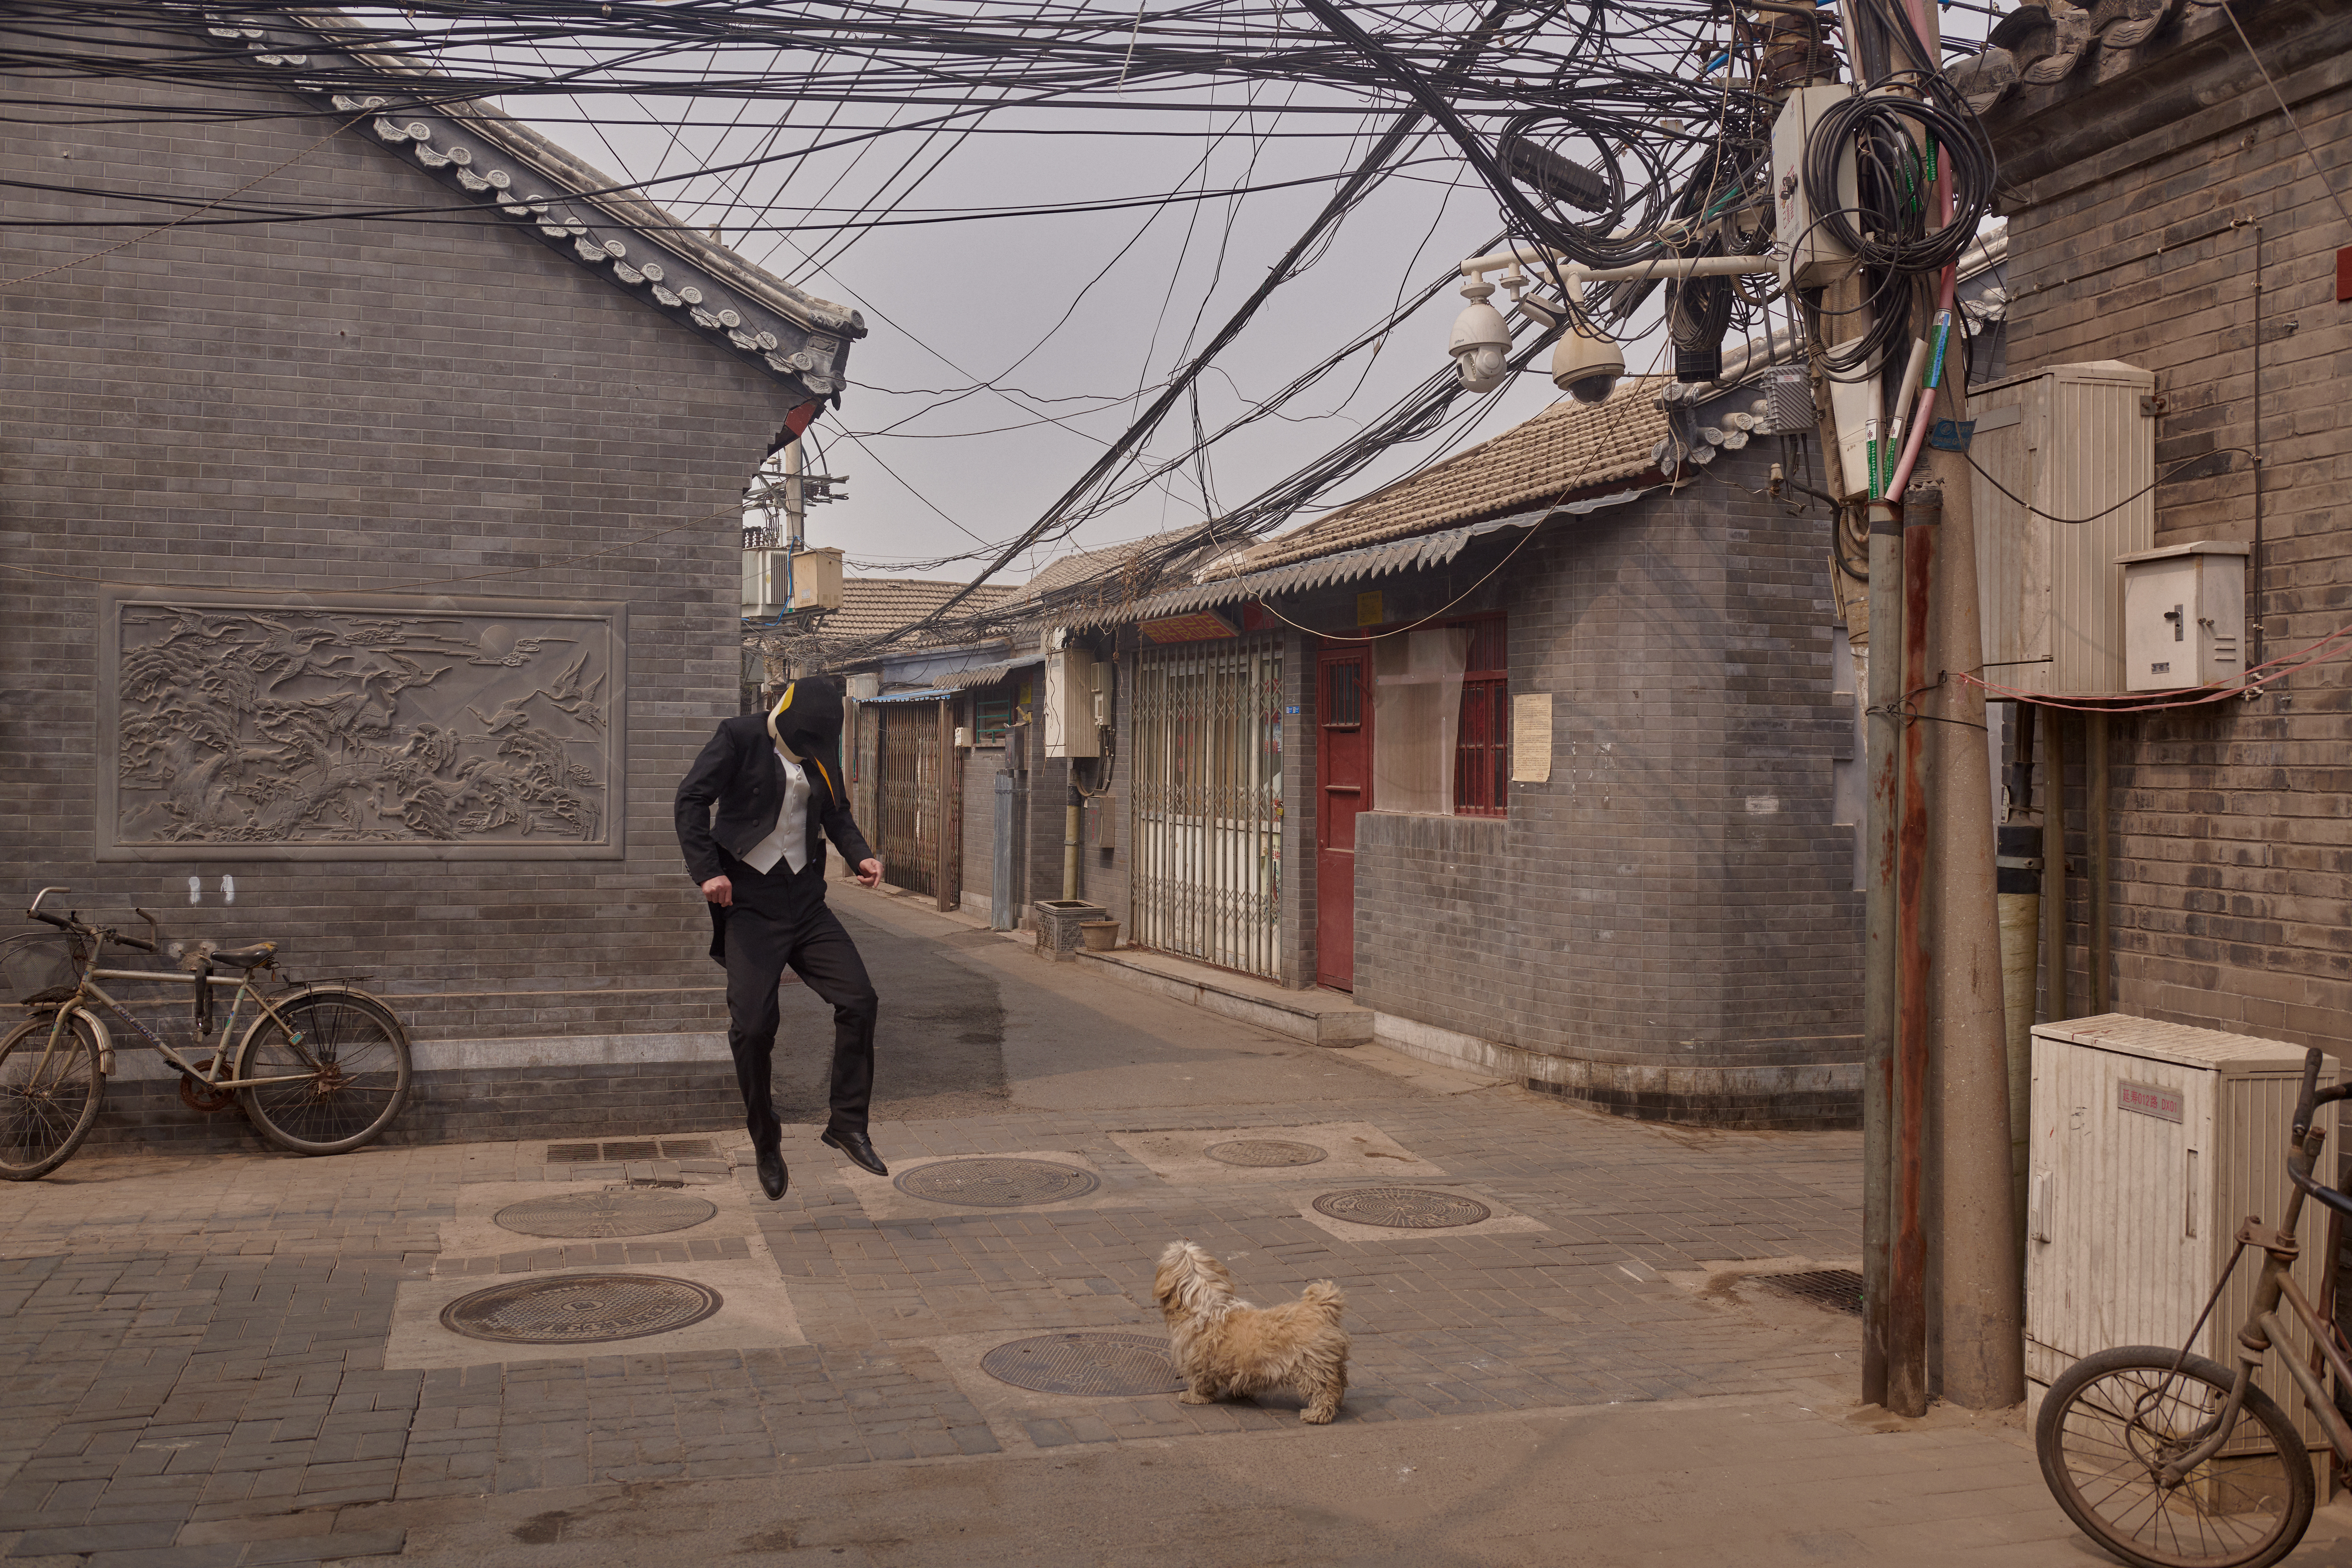 This photo shows a hutong, a traditional courtyard residential compound in Beijing. CCTVs are also visible.